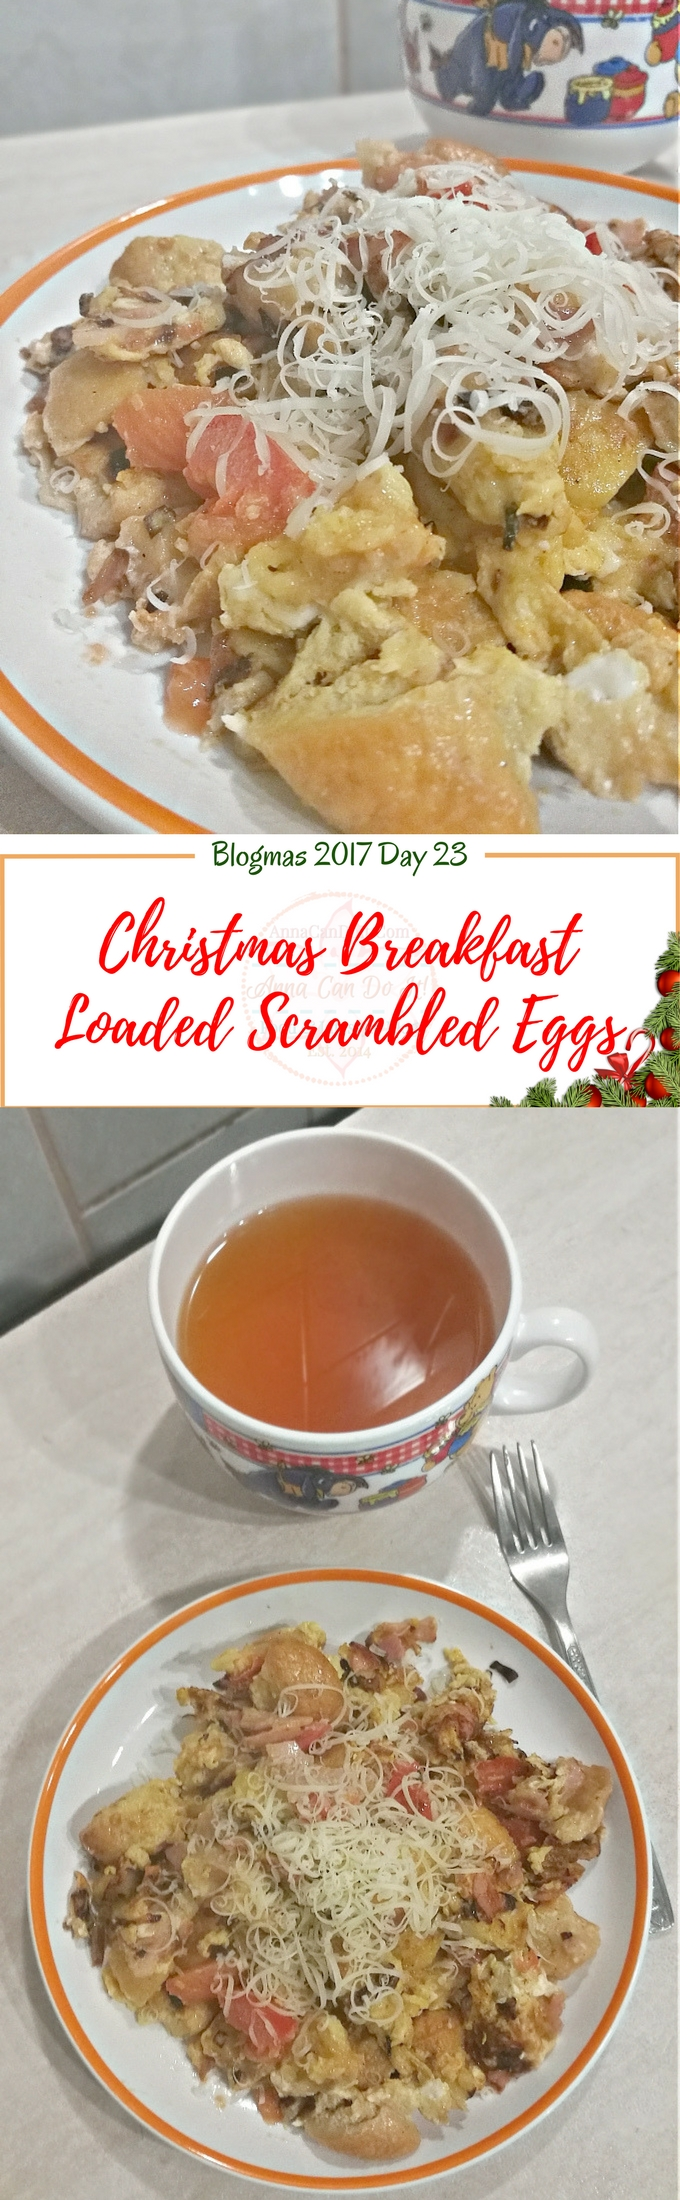 Christmas Breakfast Loaded Scrambled Eggs - Blogmas 2017 Day 23 - Anna Can Do It!